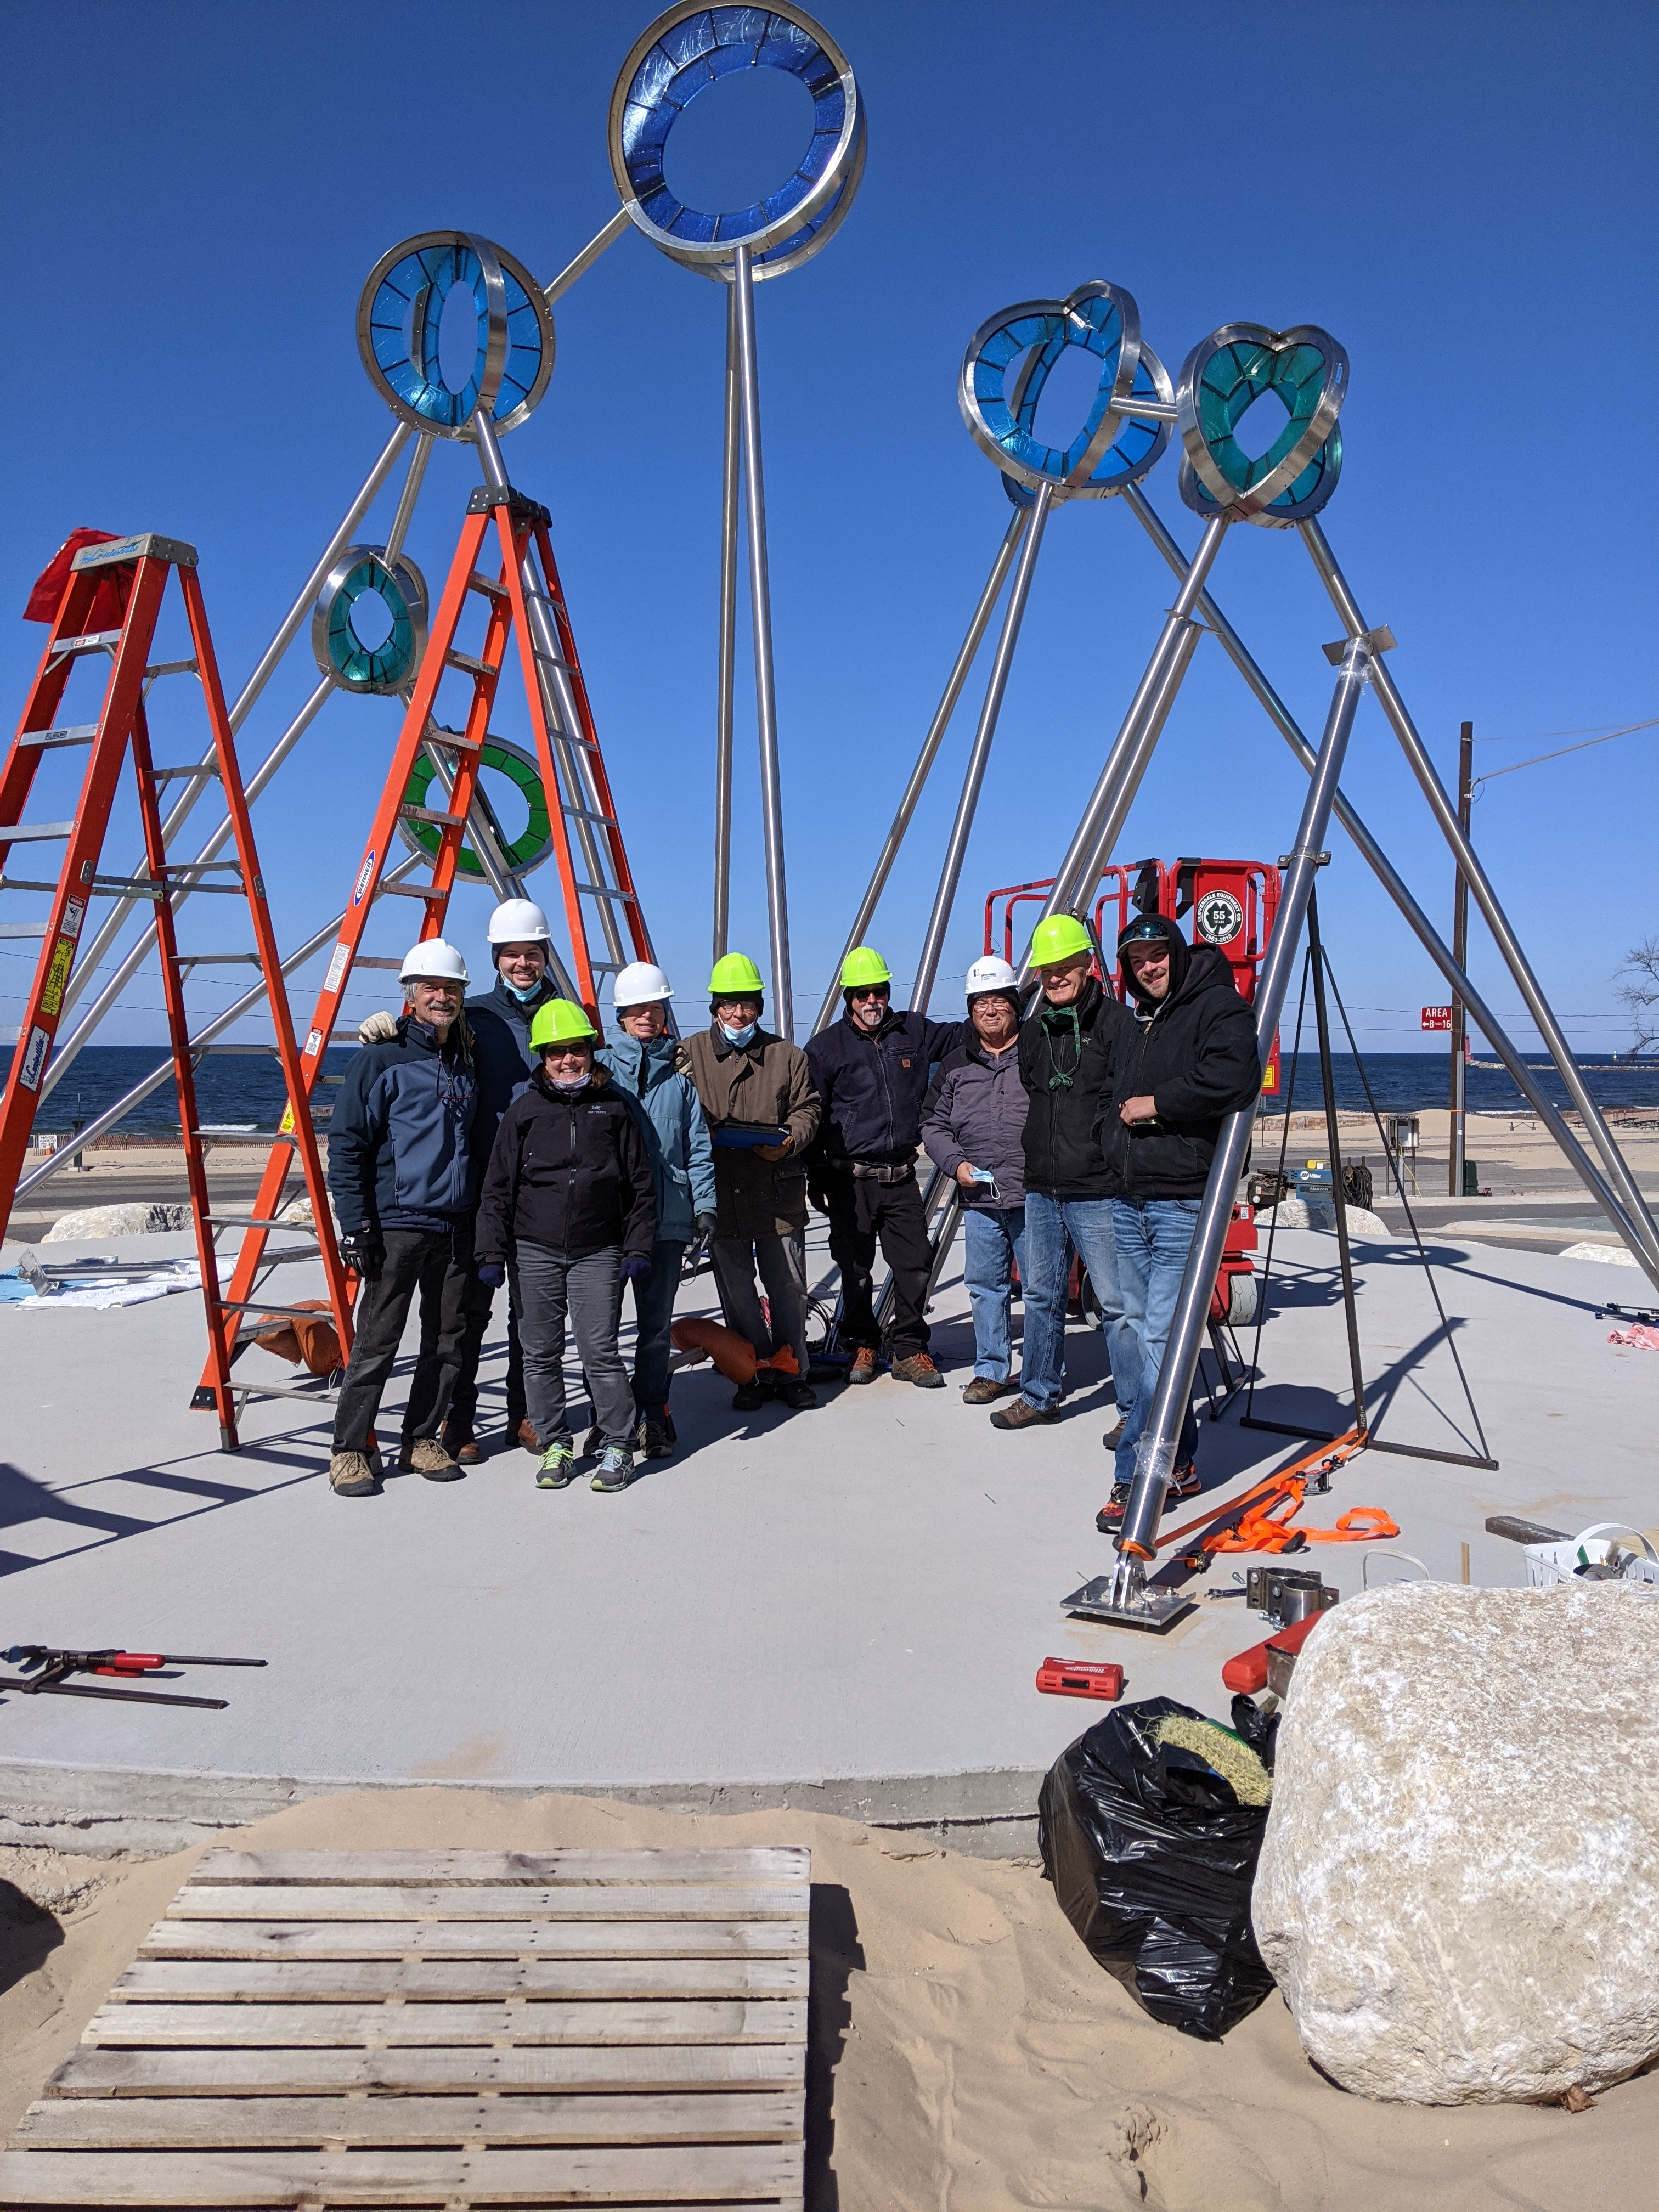 Install crew with sculpture in the background